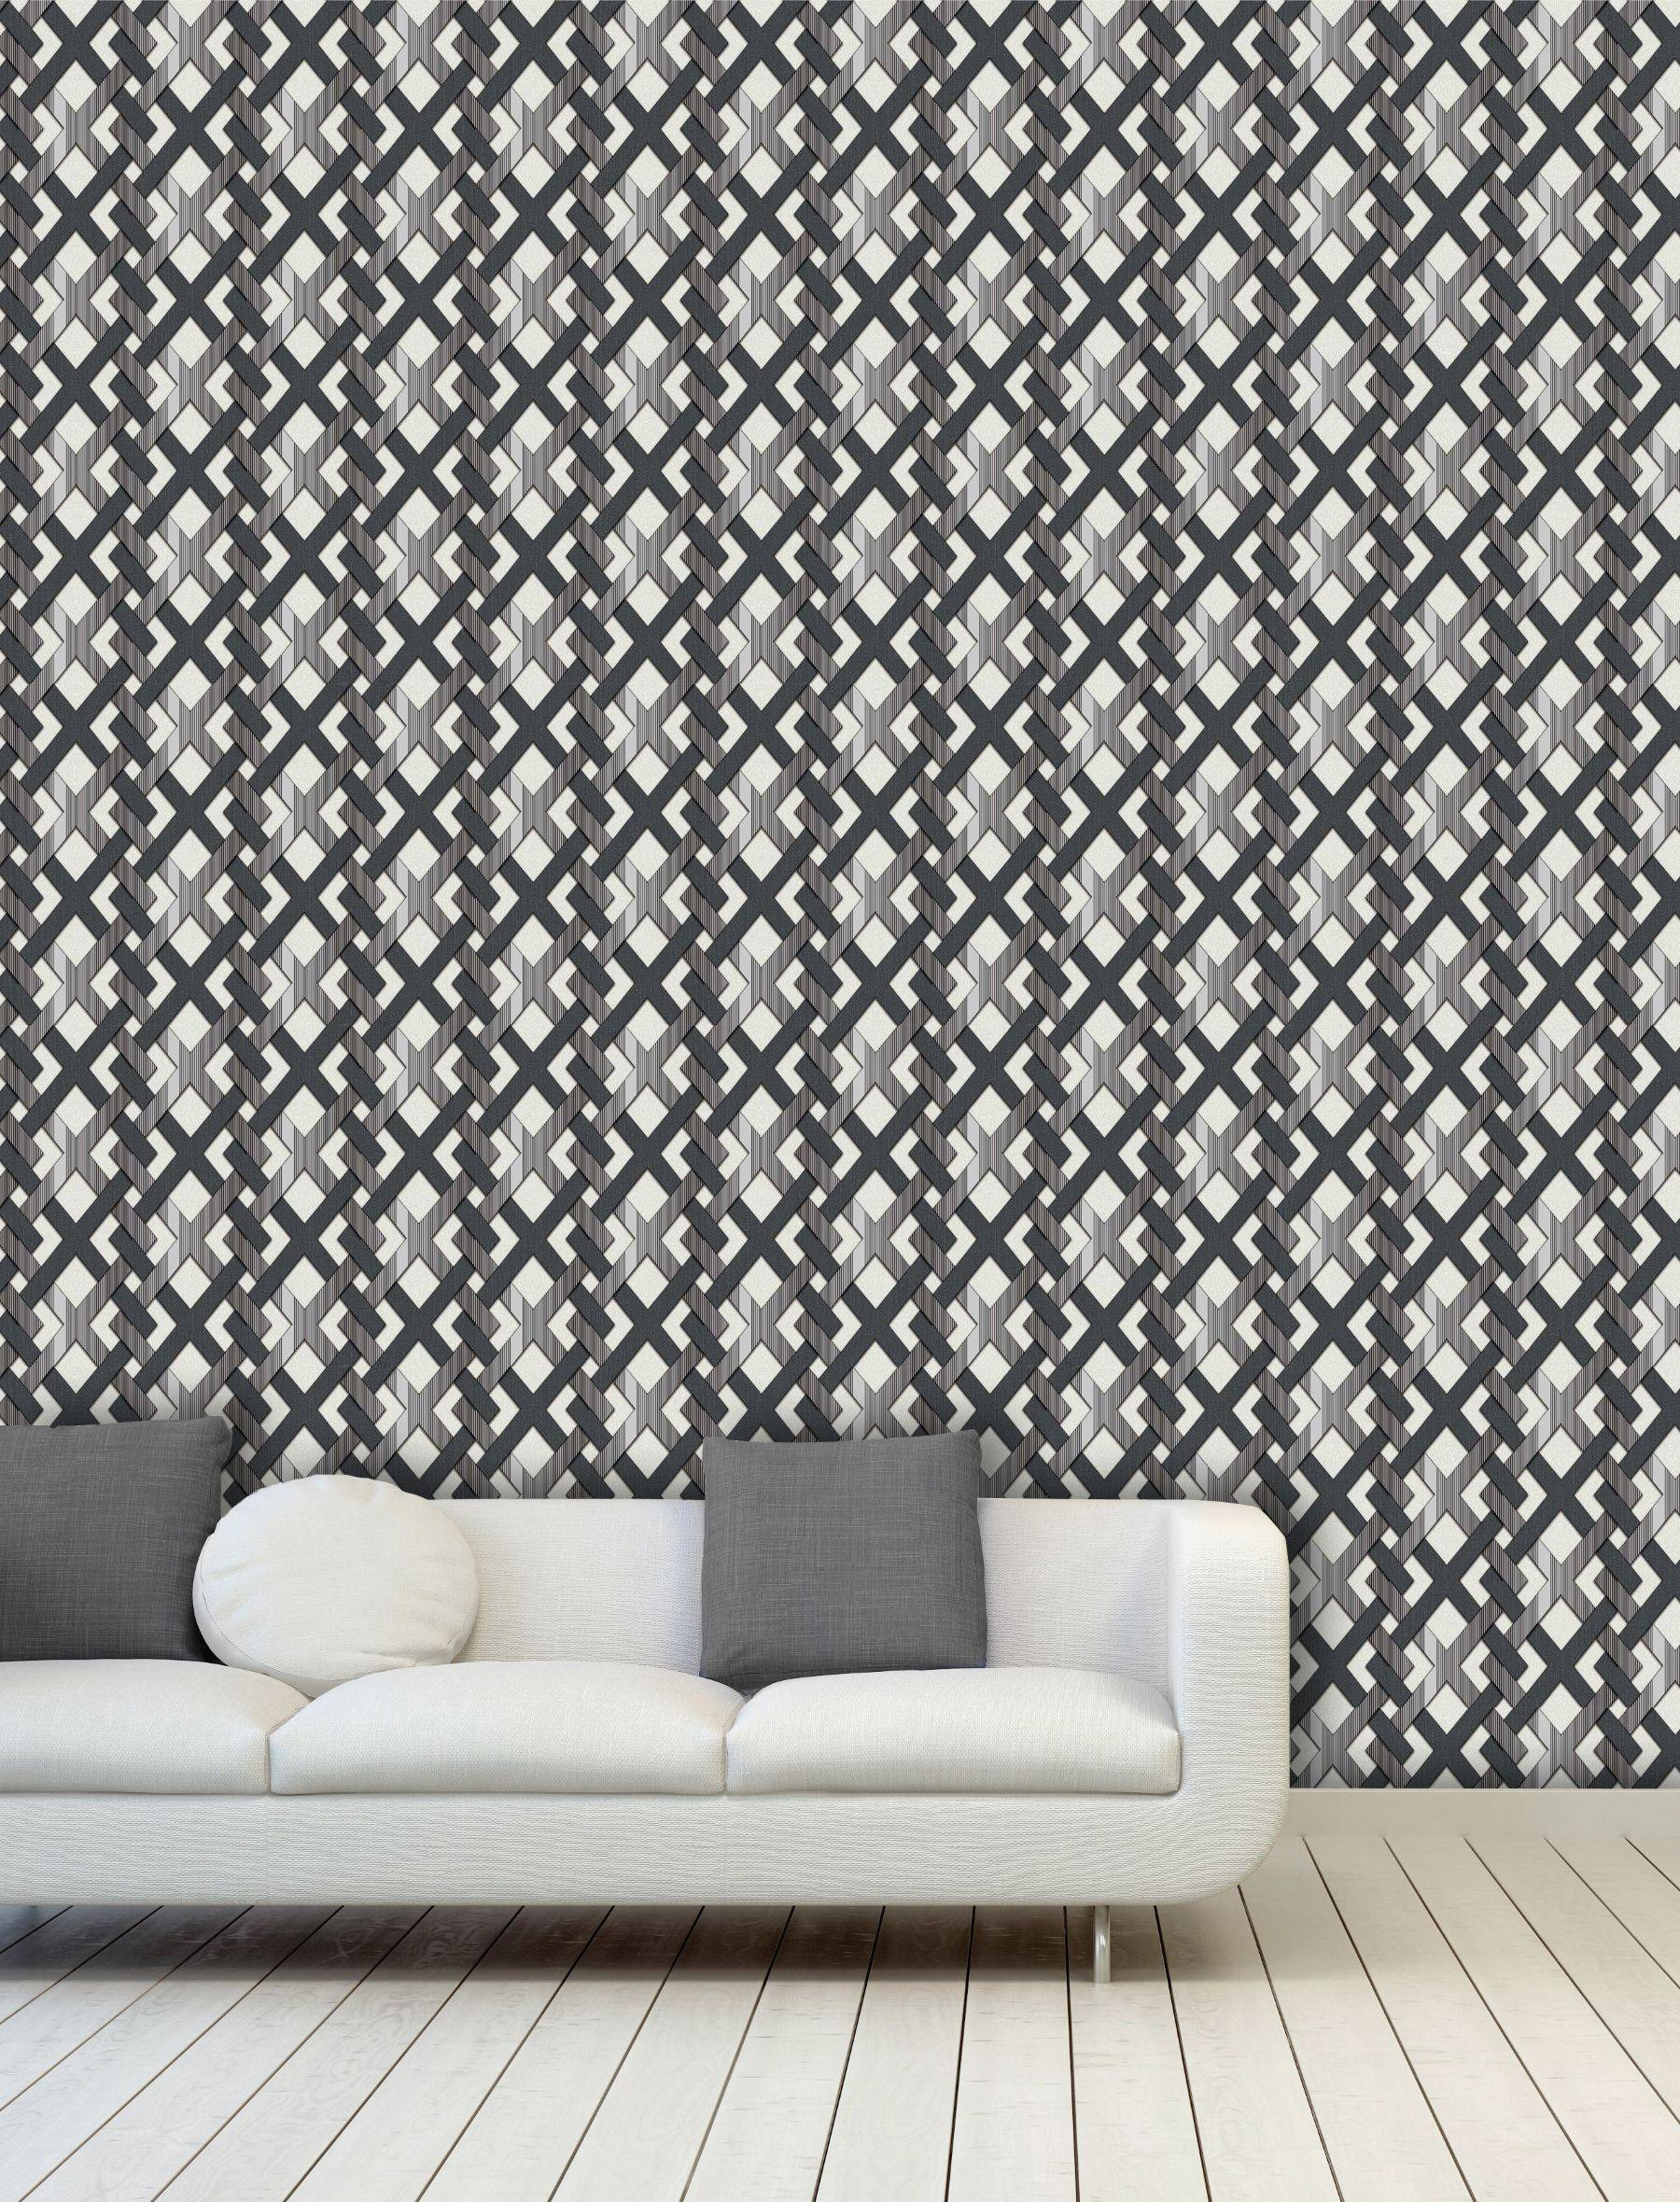 Interior Xpression PVC Geometric Patterns SDL 1 91ef7